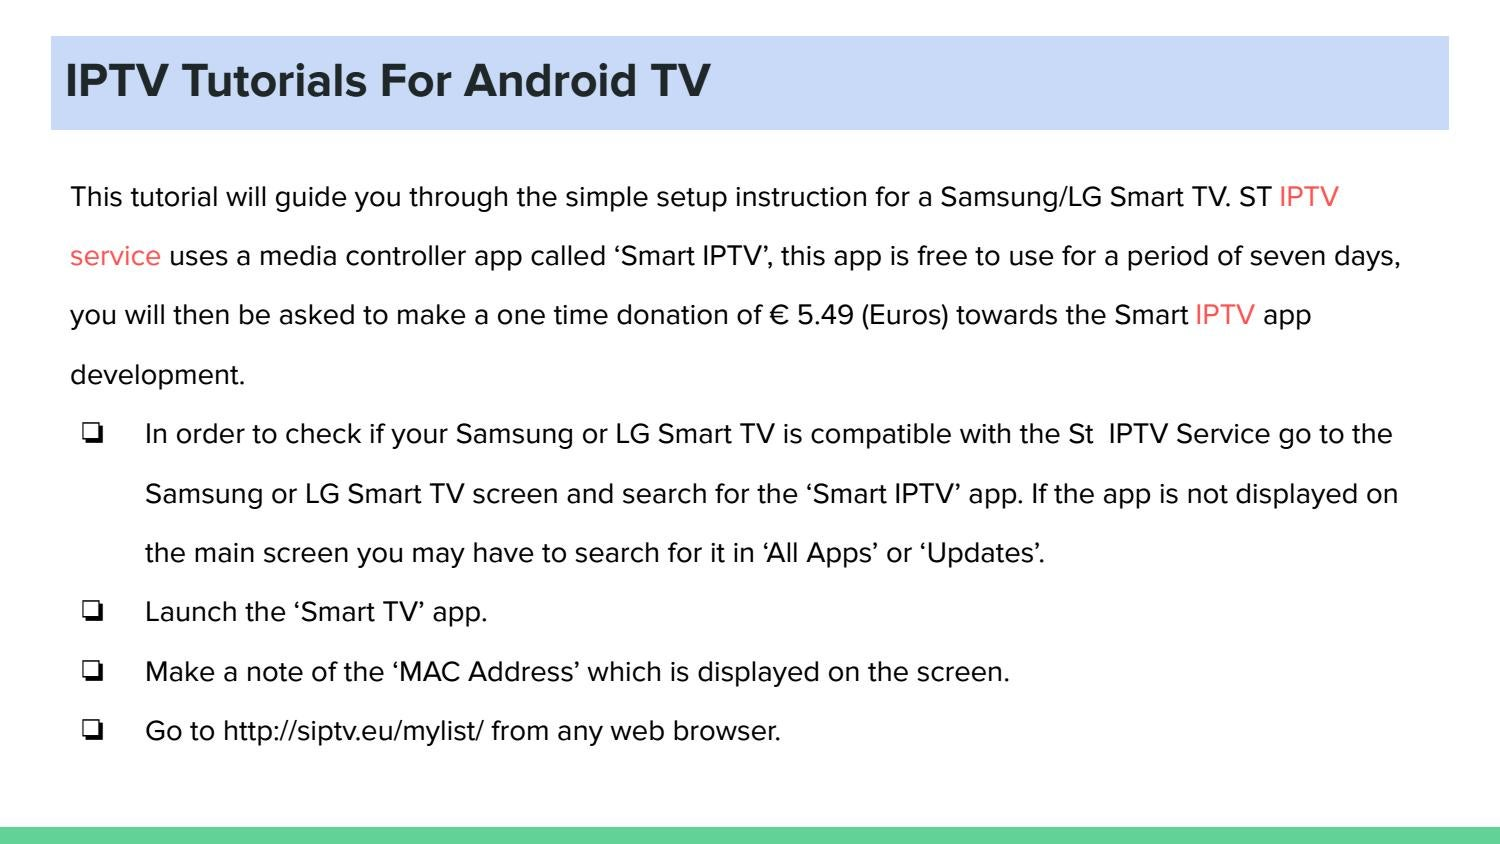 IPTV Tutorials For Android TV by Ismail - issuu